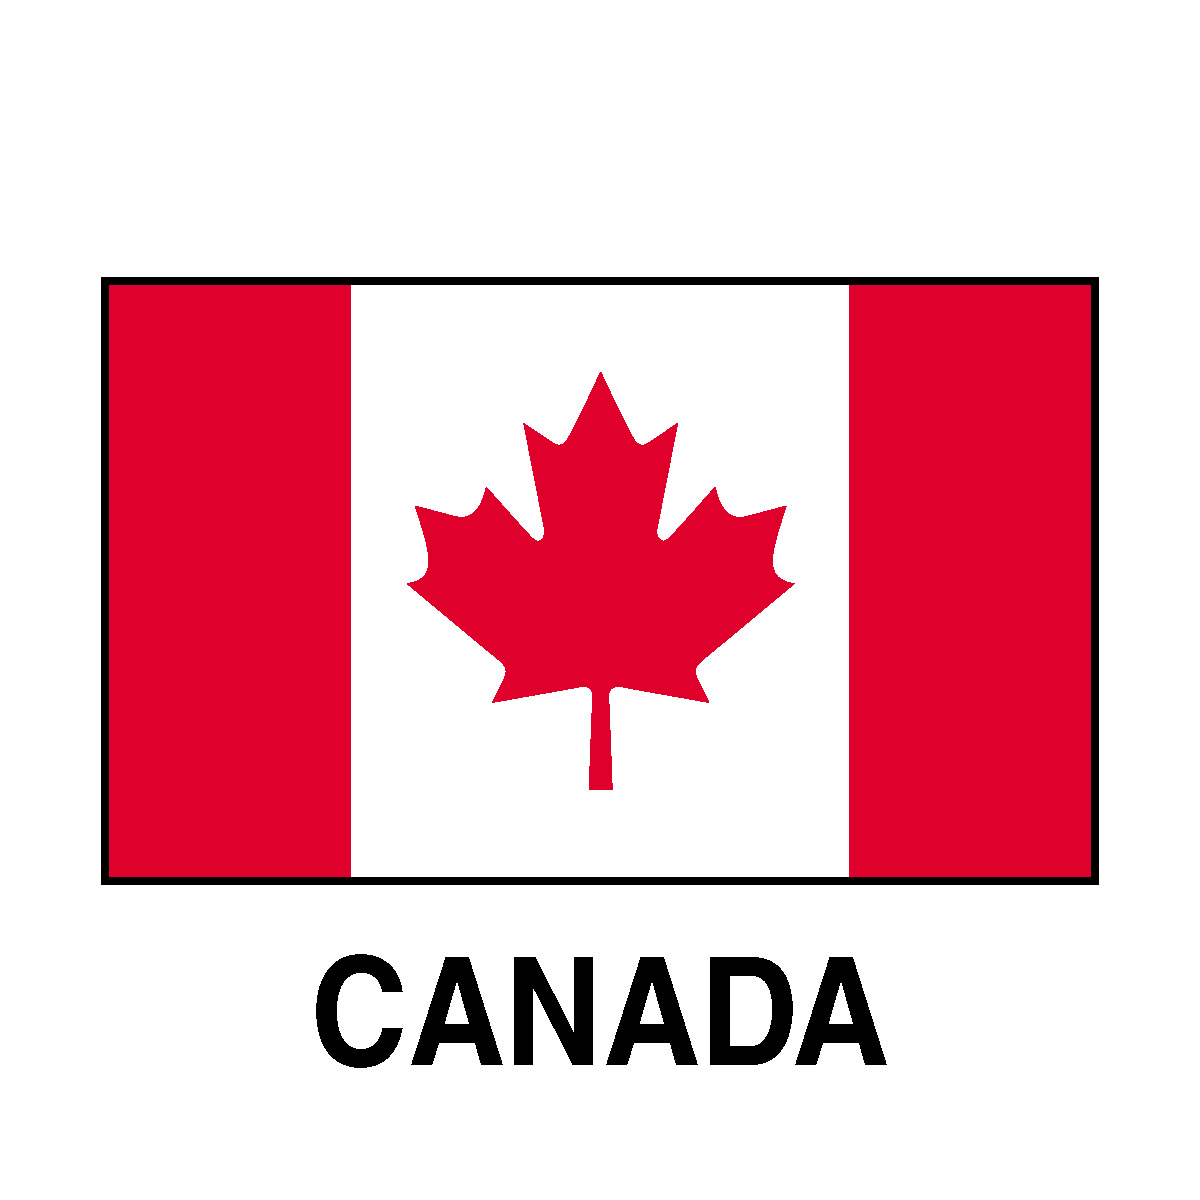 Canada flag clipart - WikiClipArt